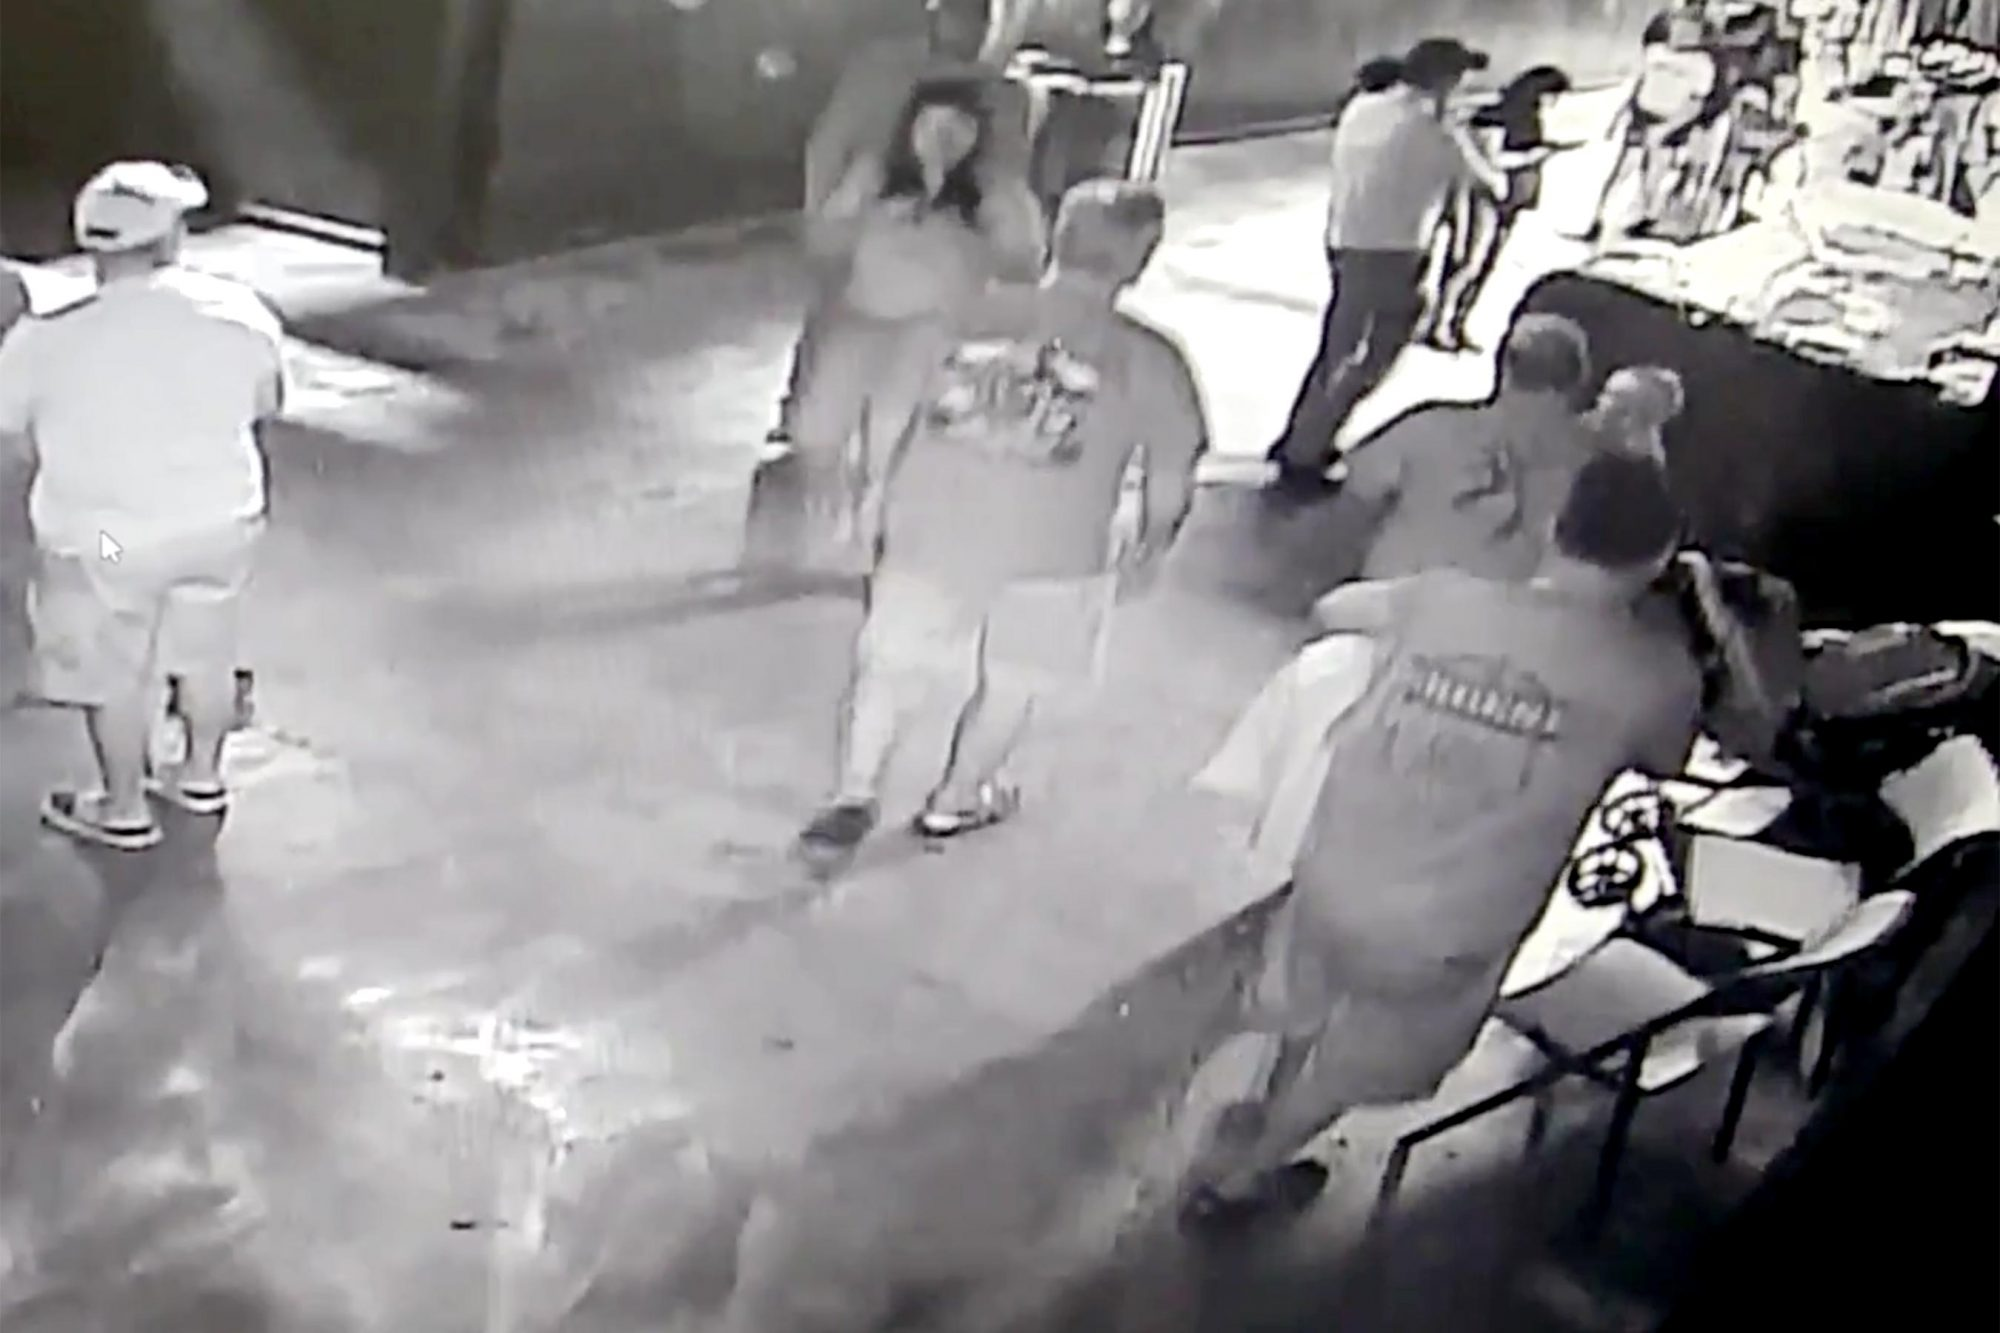 Three People Allegedly Stole a Shark From Texas Aquarium By Disguising It as a Baby in a Stroller